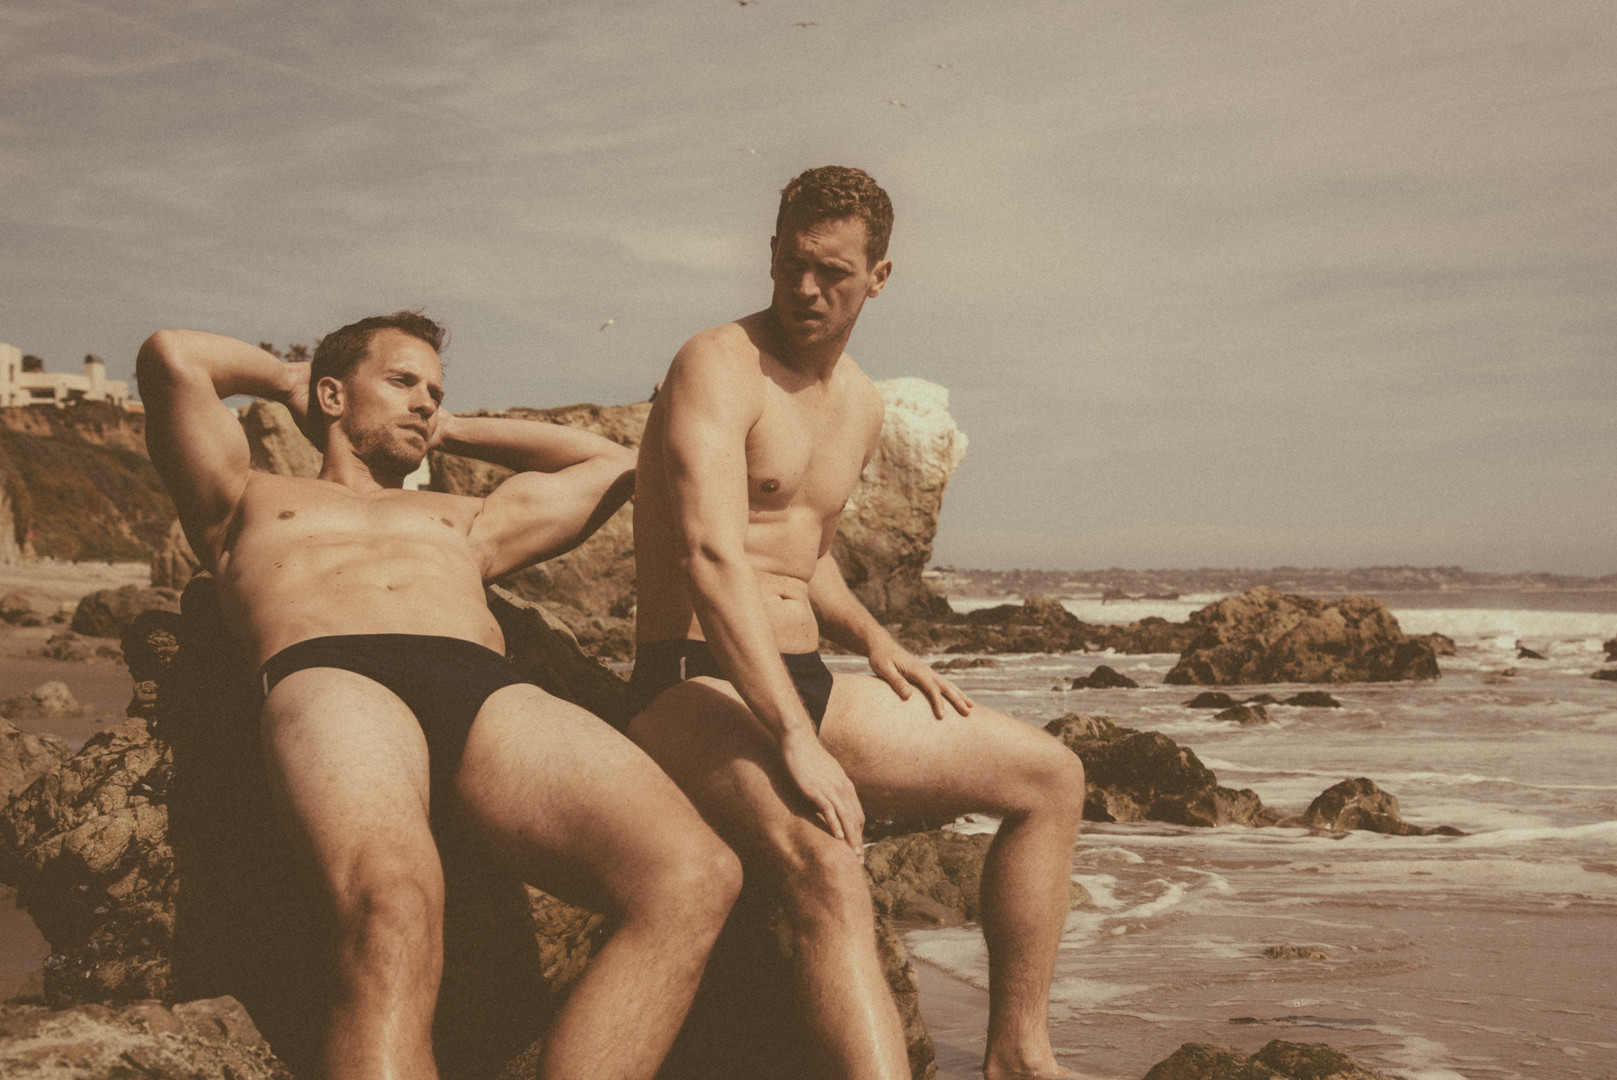 James Eysenbach & David Walsh by Connor Clayton